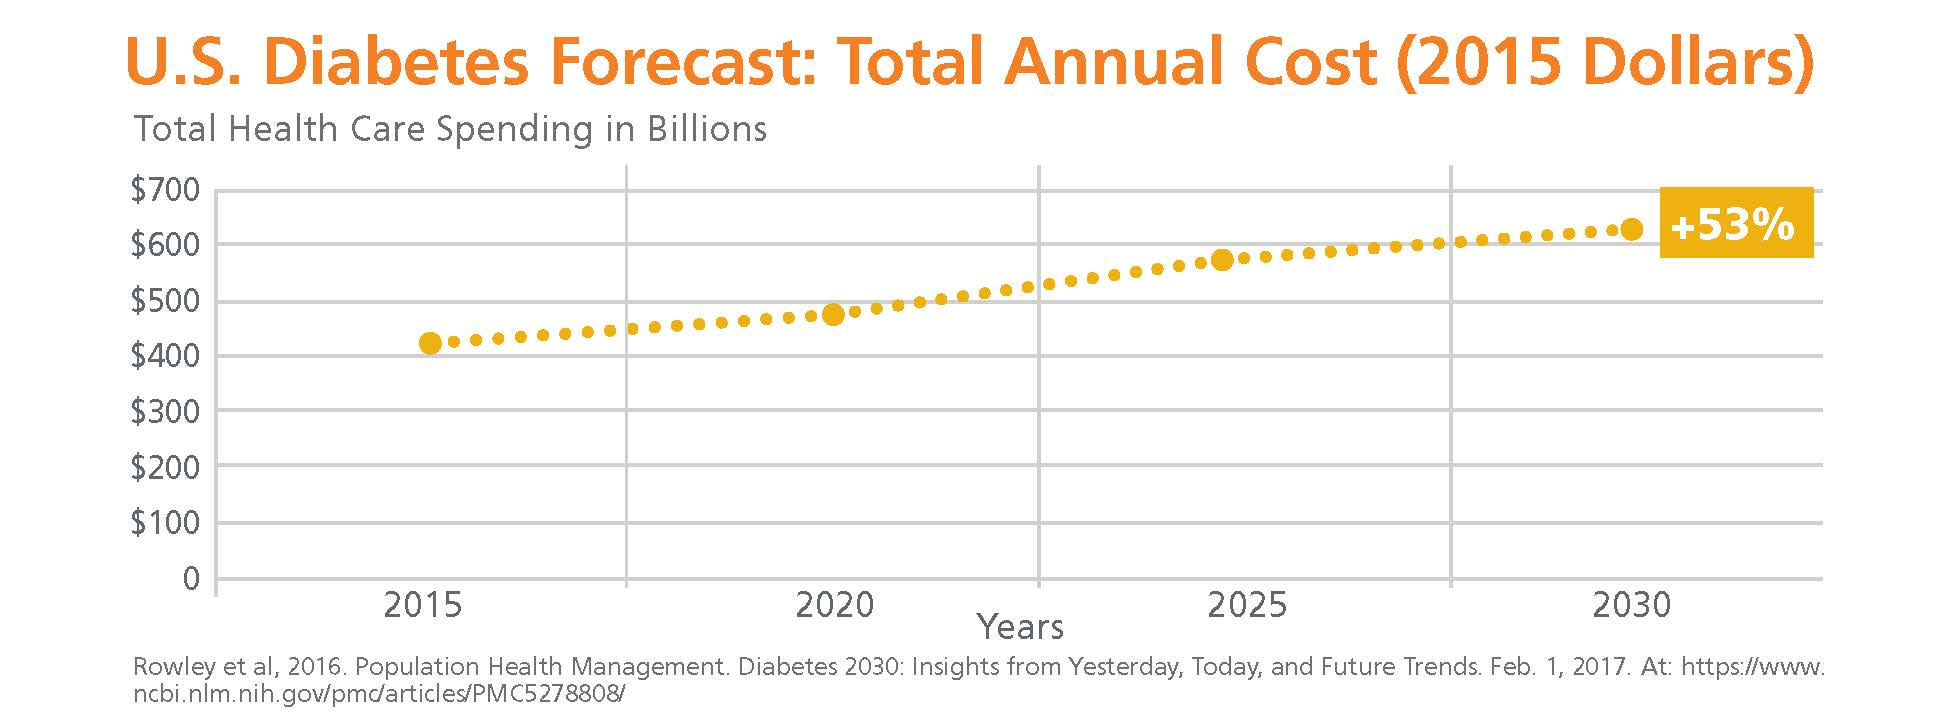 Diabetes cost forecast